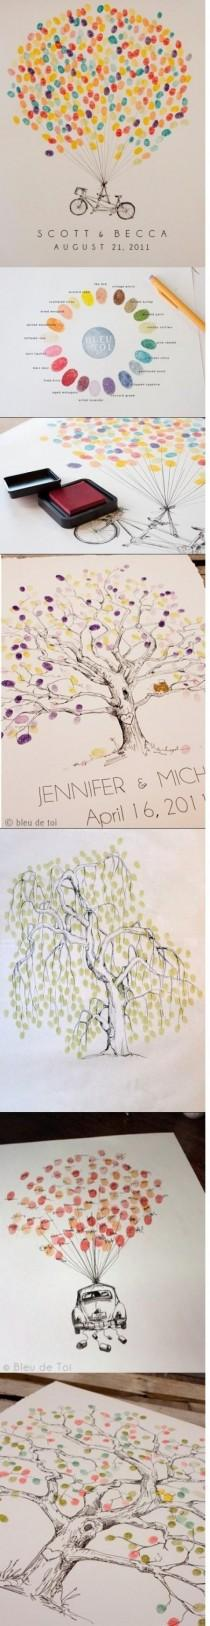 wedding photo - Unique and Creative Wedding Guestbook Fingerprint Ideas